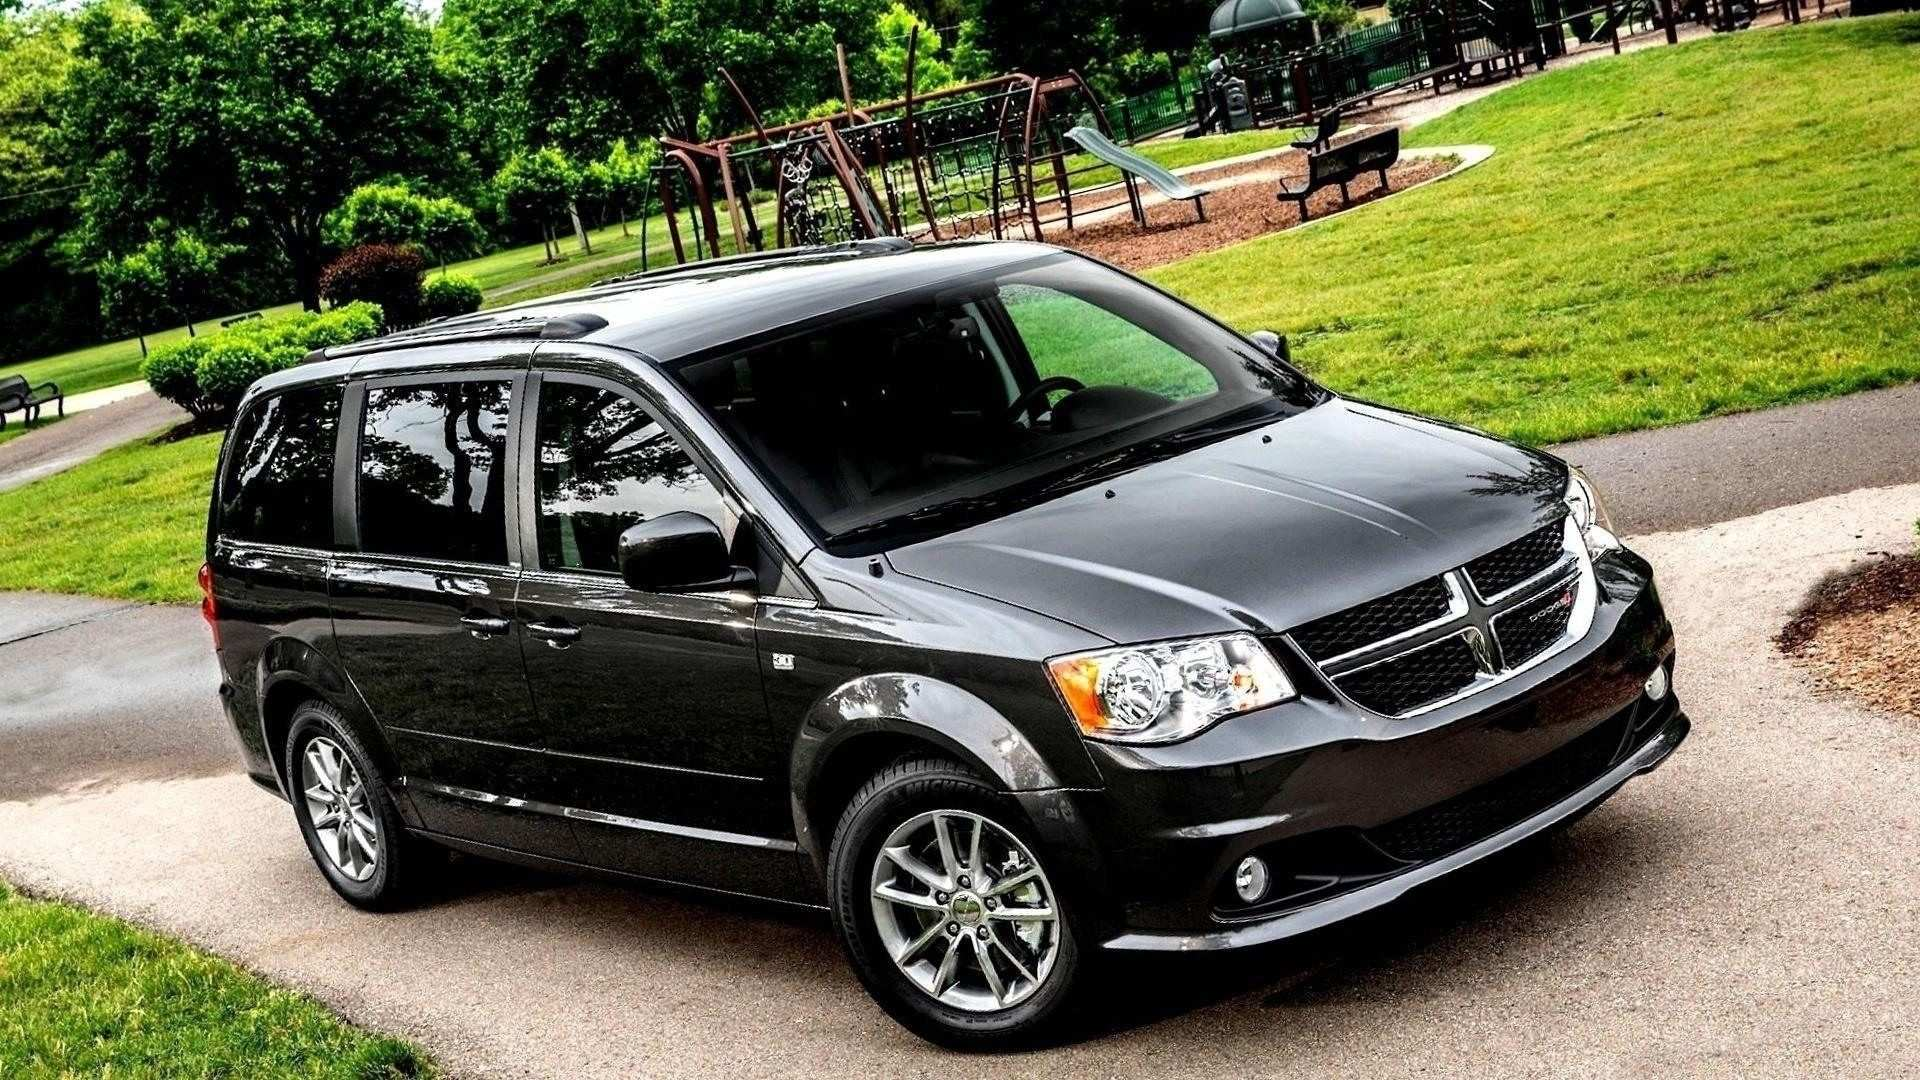 94 Great 2019 Dodge Grand Caravan Specs And Review Pictures for 2019 Dodge Grand Caravan Specs And Review